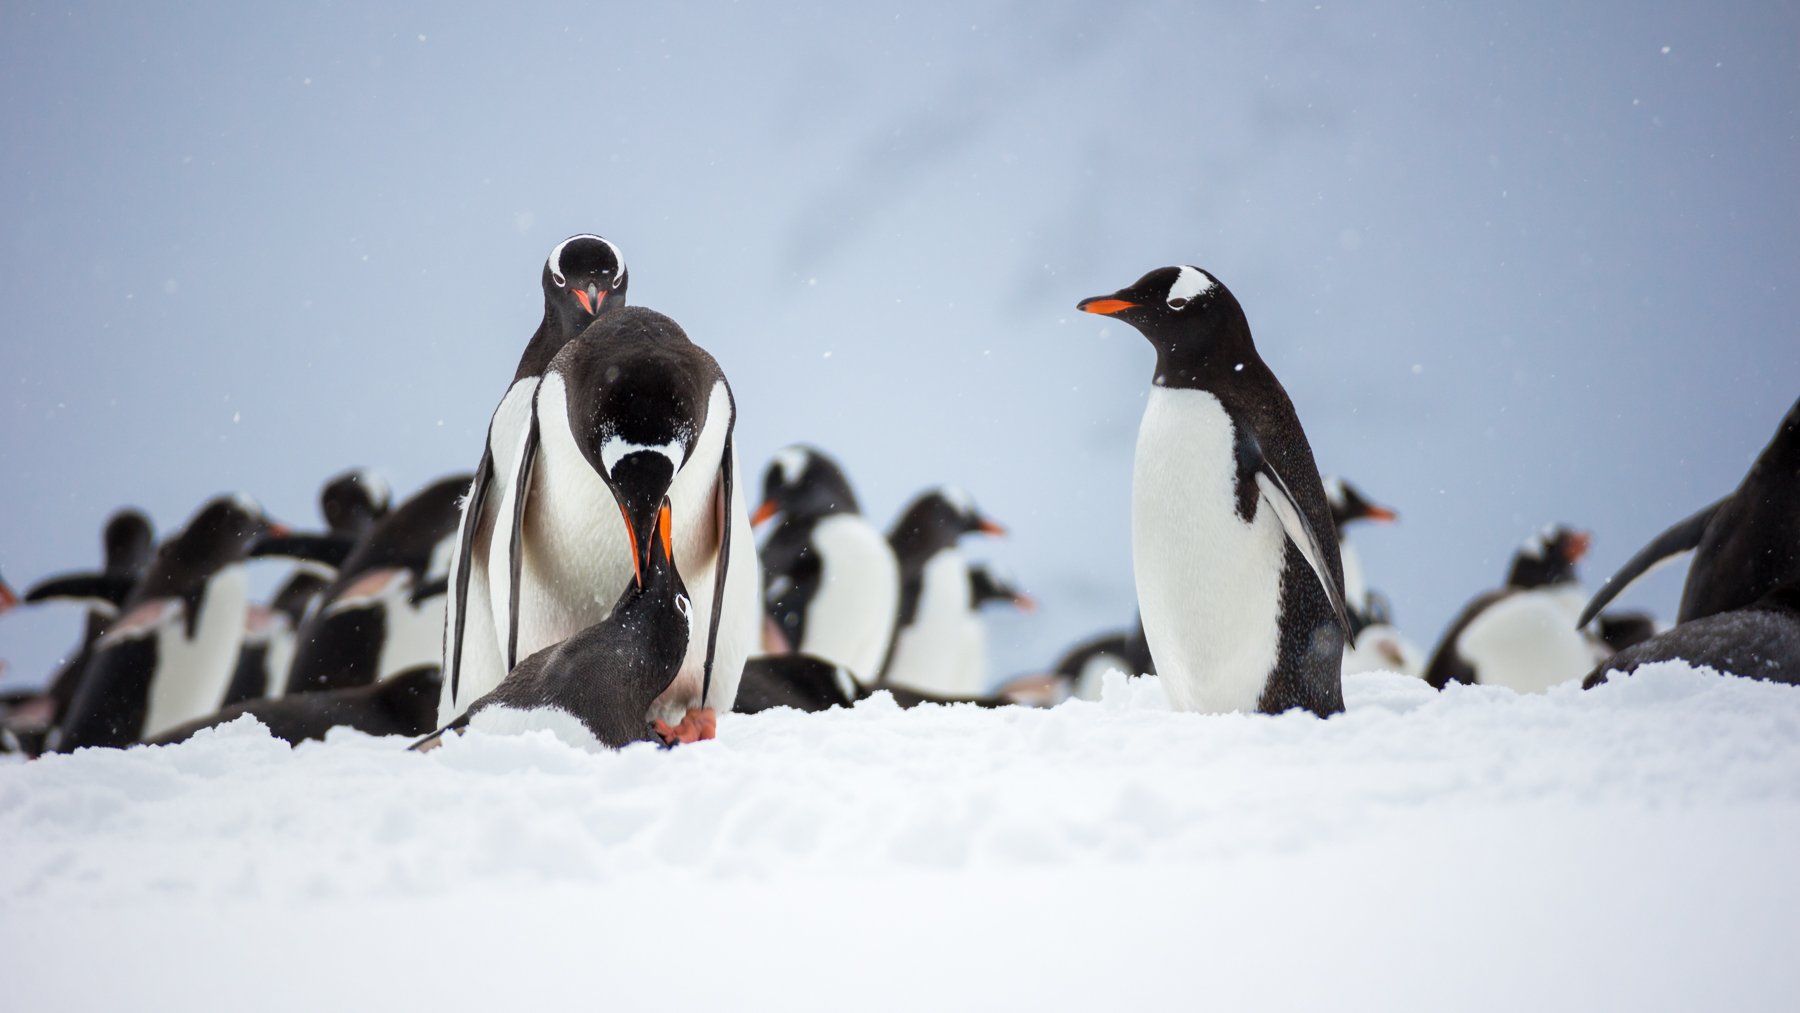 photo essay antarctic penguins antarctica lovers embrace mating gentoo penguins admired by wishful onlookers